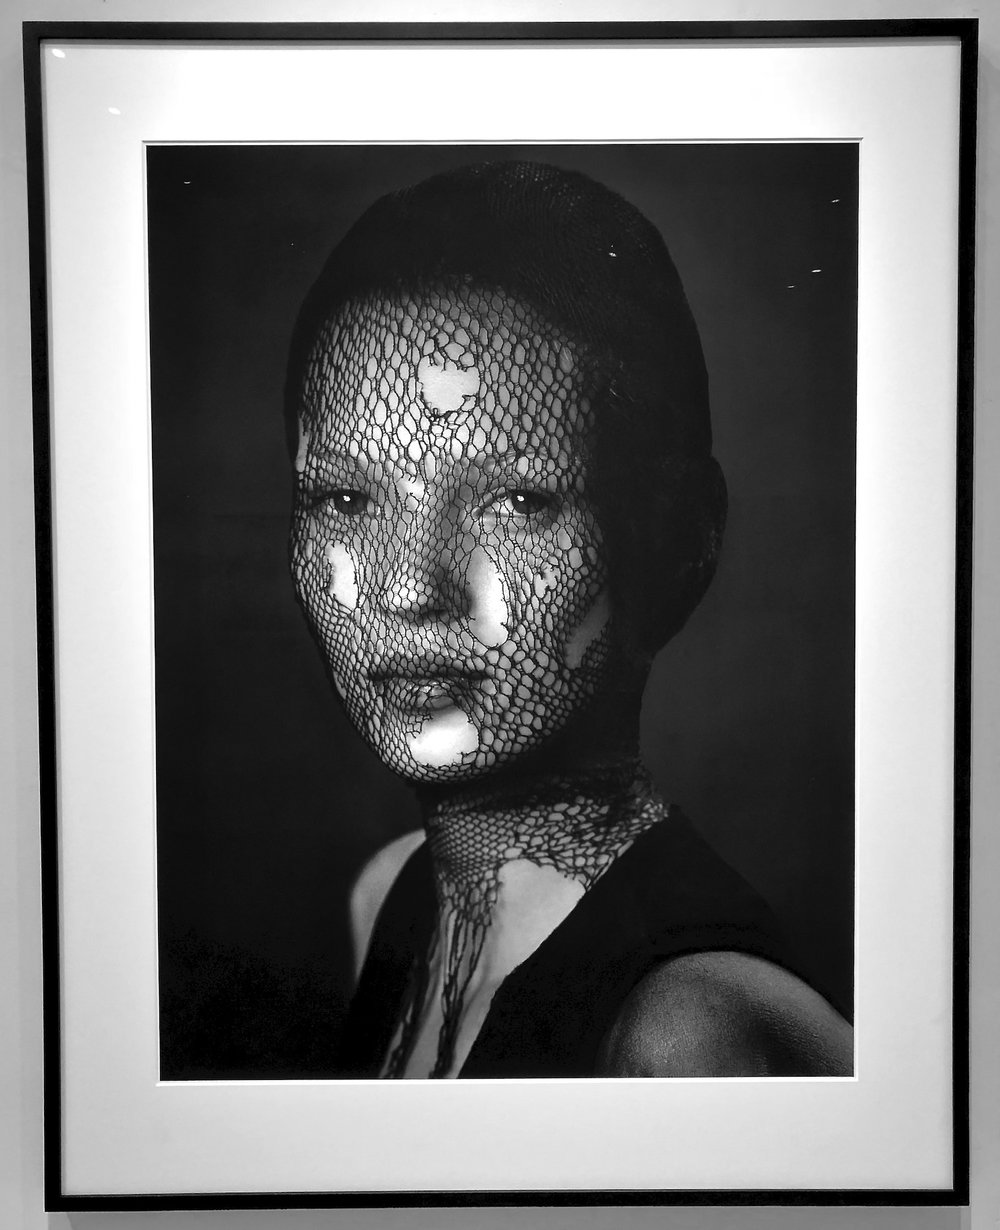 Albert Watson Kate Moss Torn Veil, 1993 Archival pigment photograph 106.68 x 142.24 cm | 42 x 56 in Edition of 10 AWA/F 1